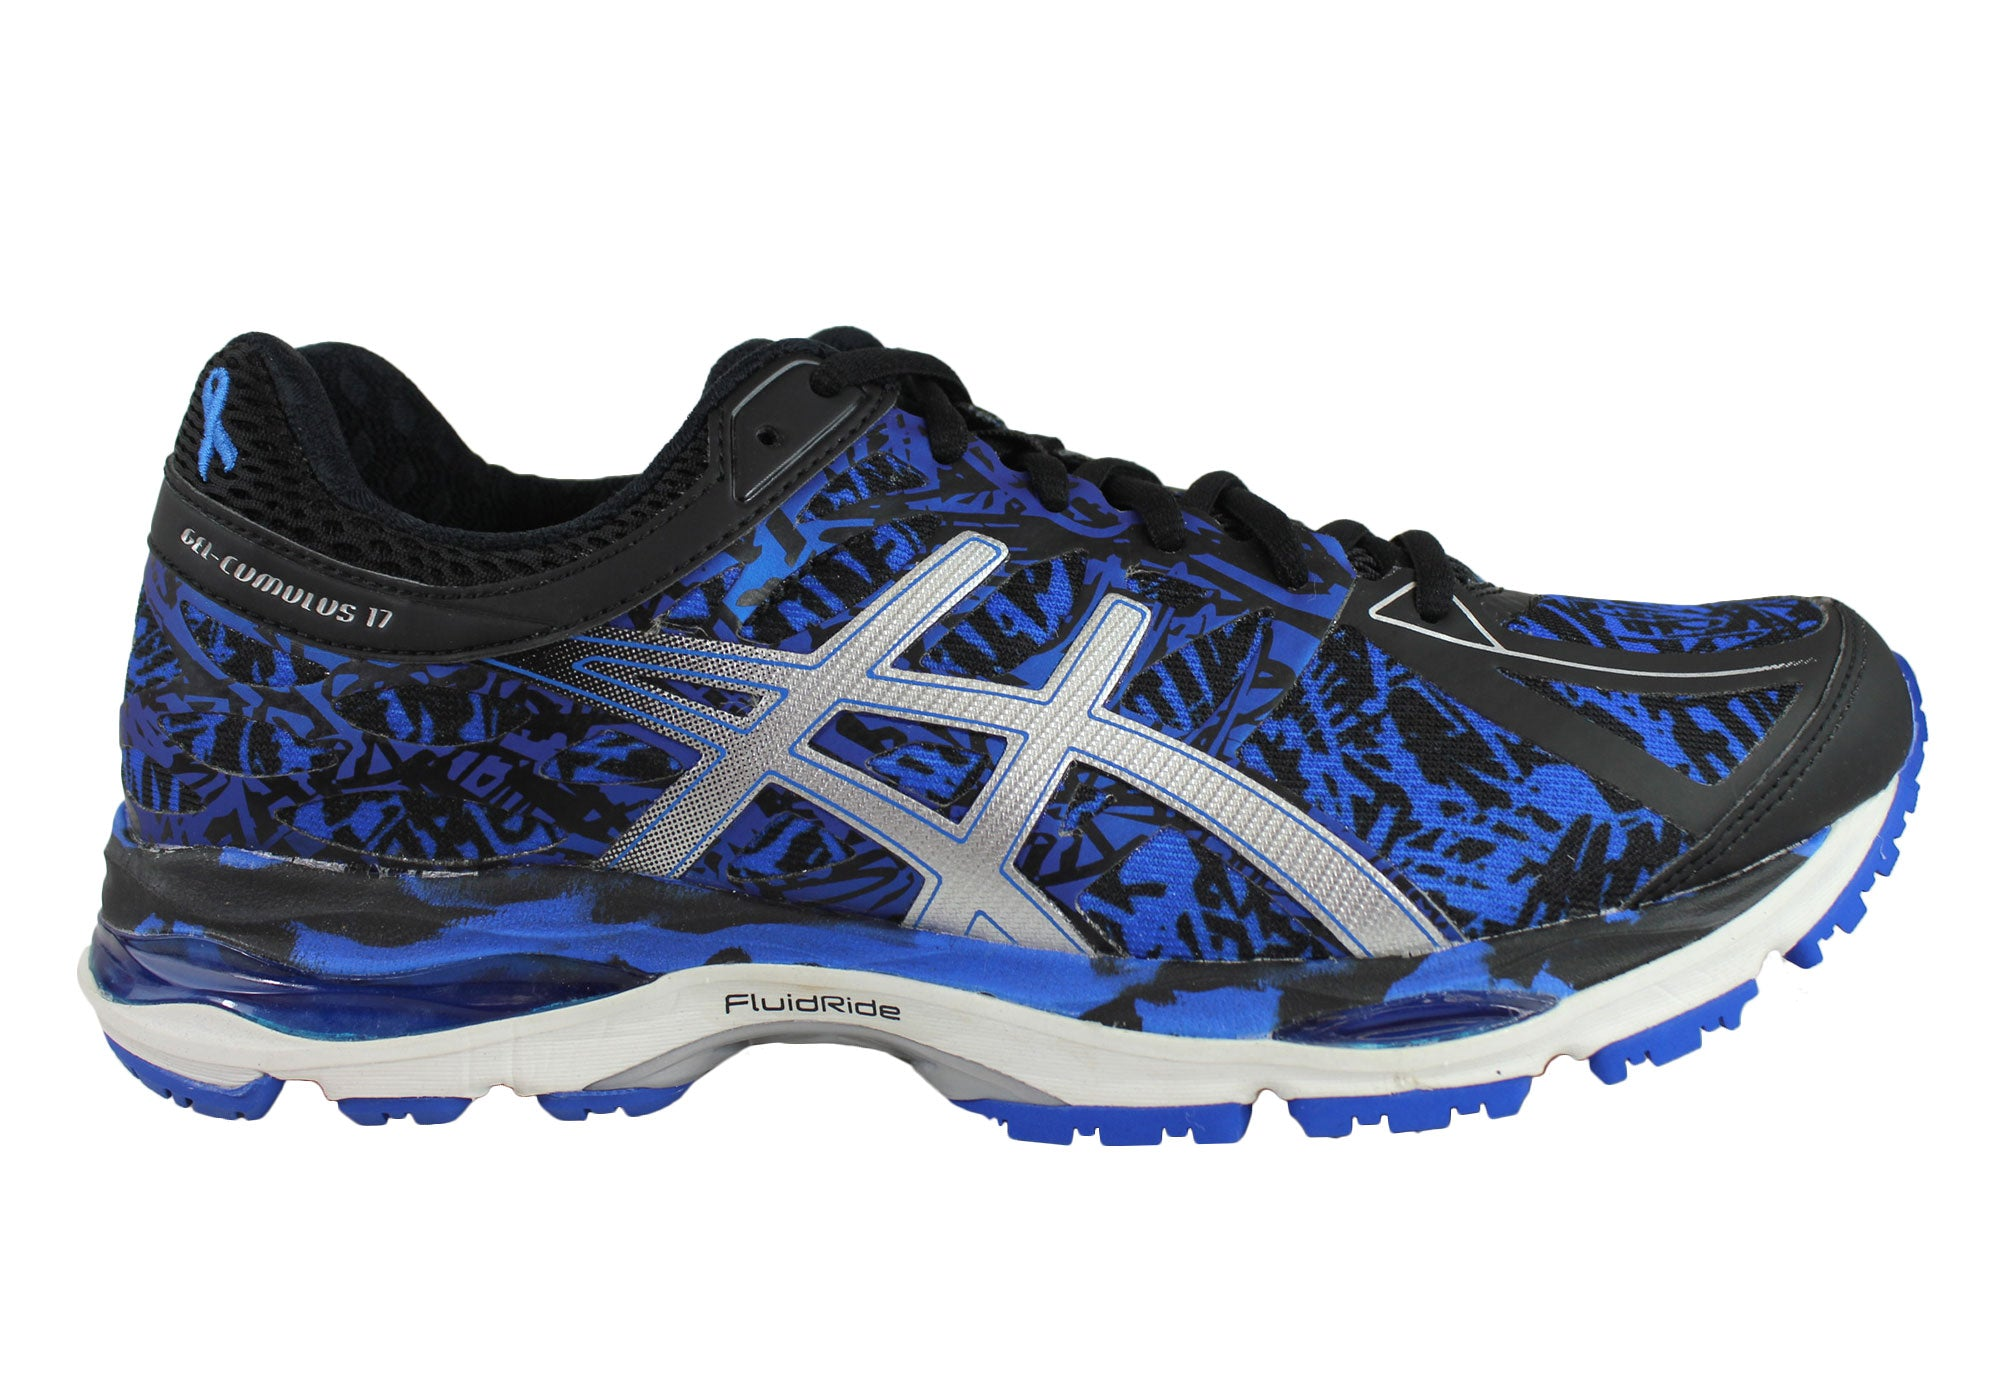 low priced c4651 bc2d5 Home Asics Gel-Cumulus 17 Br Mens Cushioned Sport Running Shoes. Sale ends  in 19 days, 6 hours, 58 minutes, 29 seconds. Blue  ...